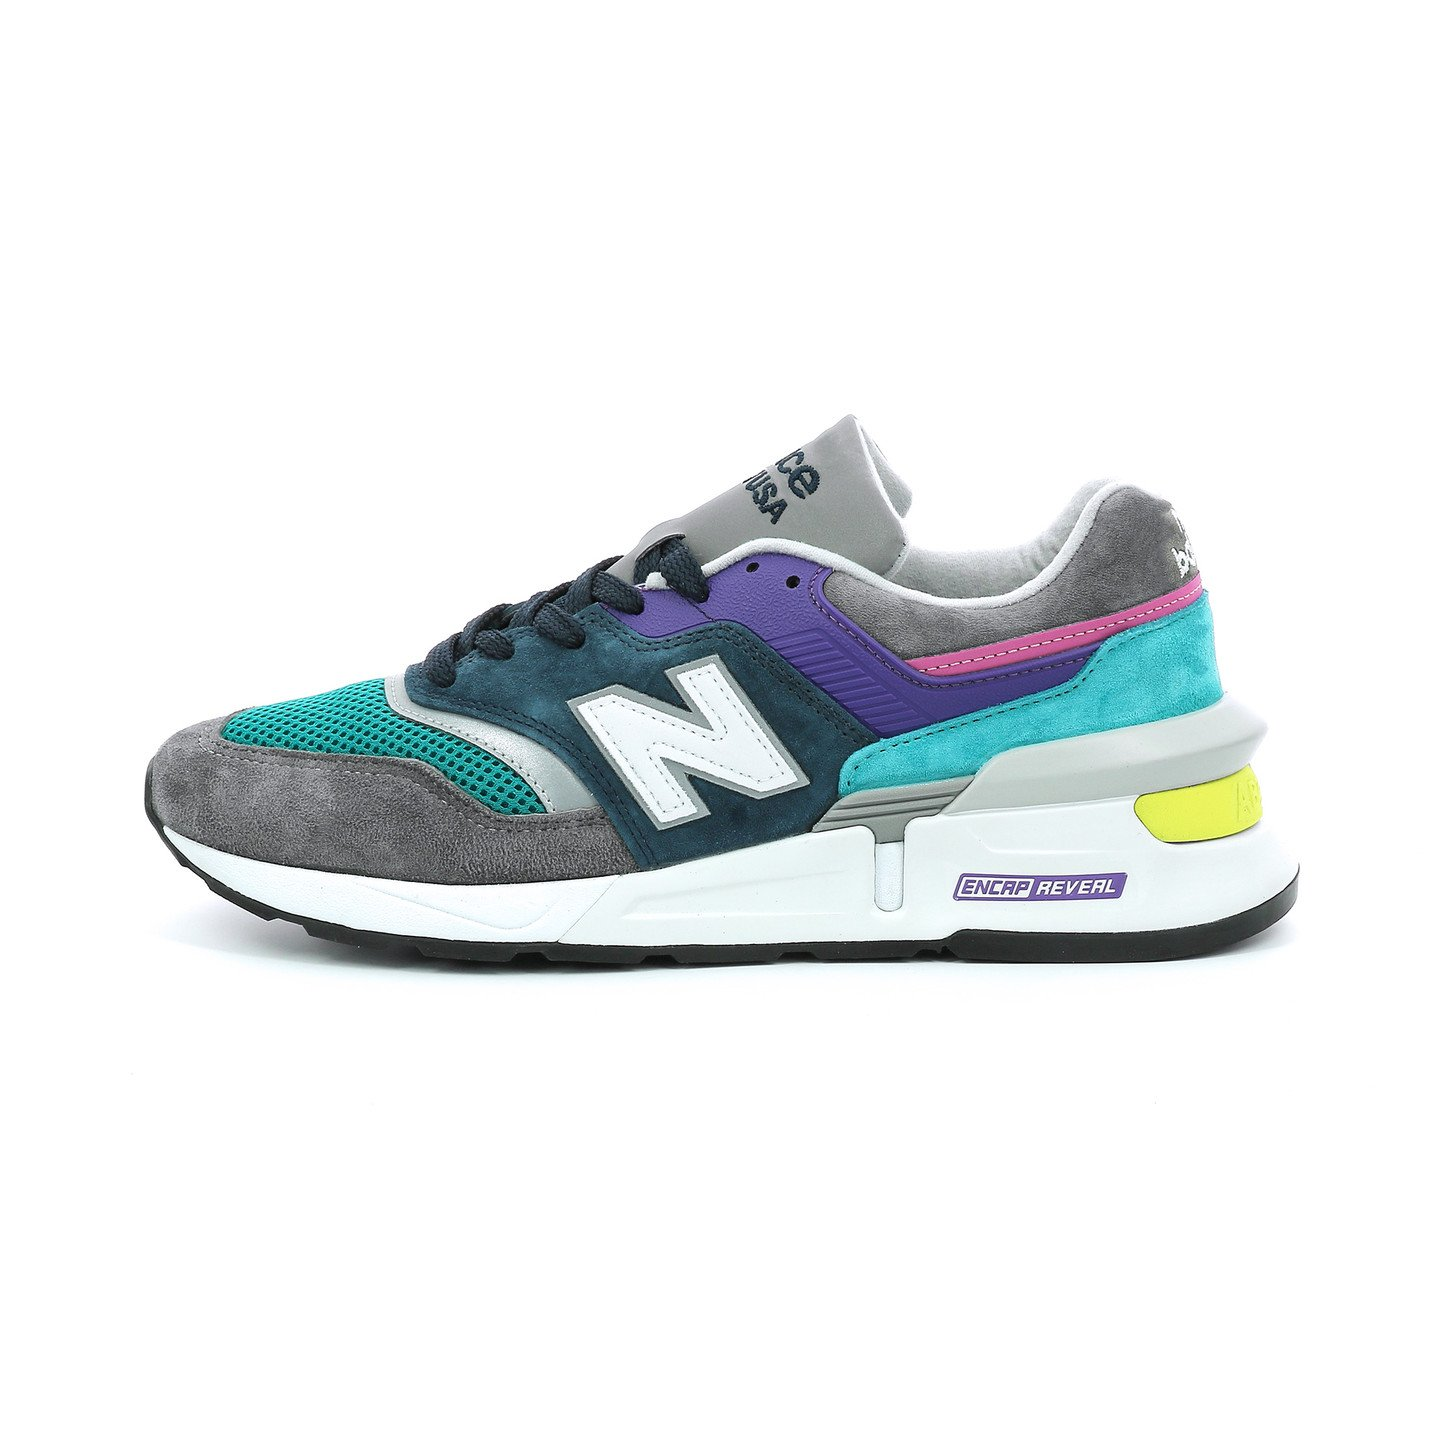 New Balance M997 Sport - Made in USA Grey / Multi M997SMG